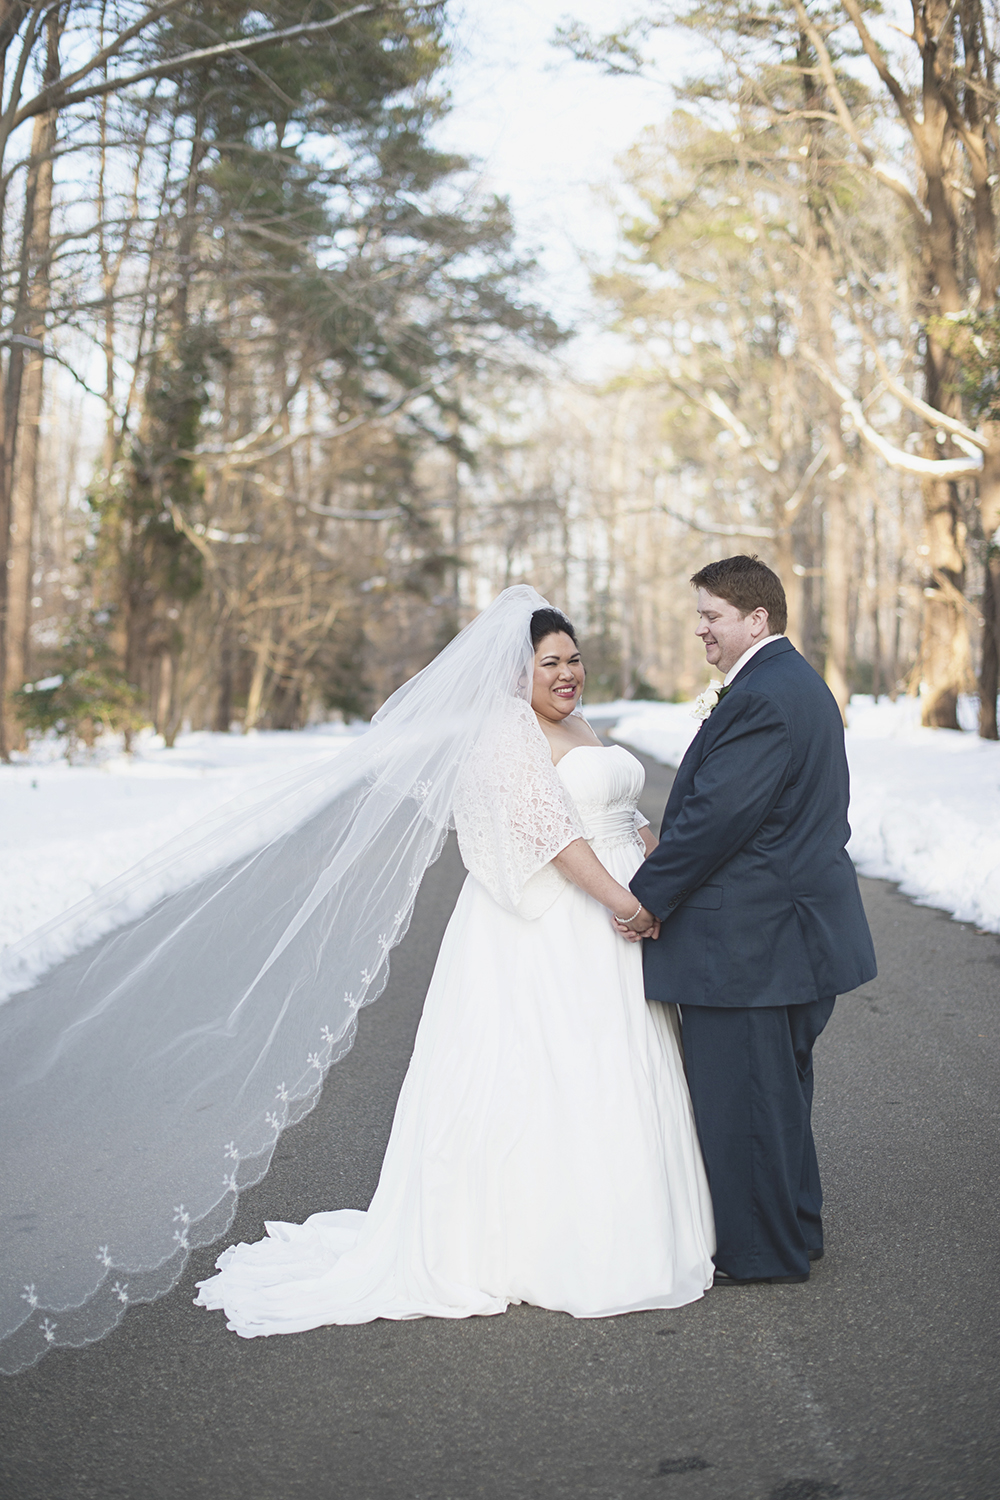 Bride & groom portraits in the snow | Cathedral veil | Winter wedding